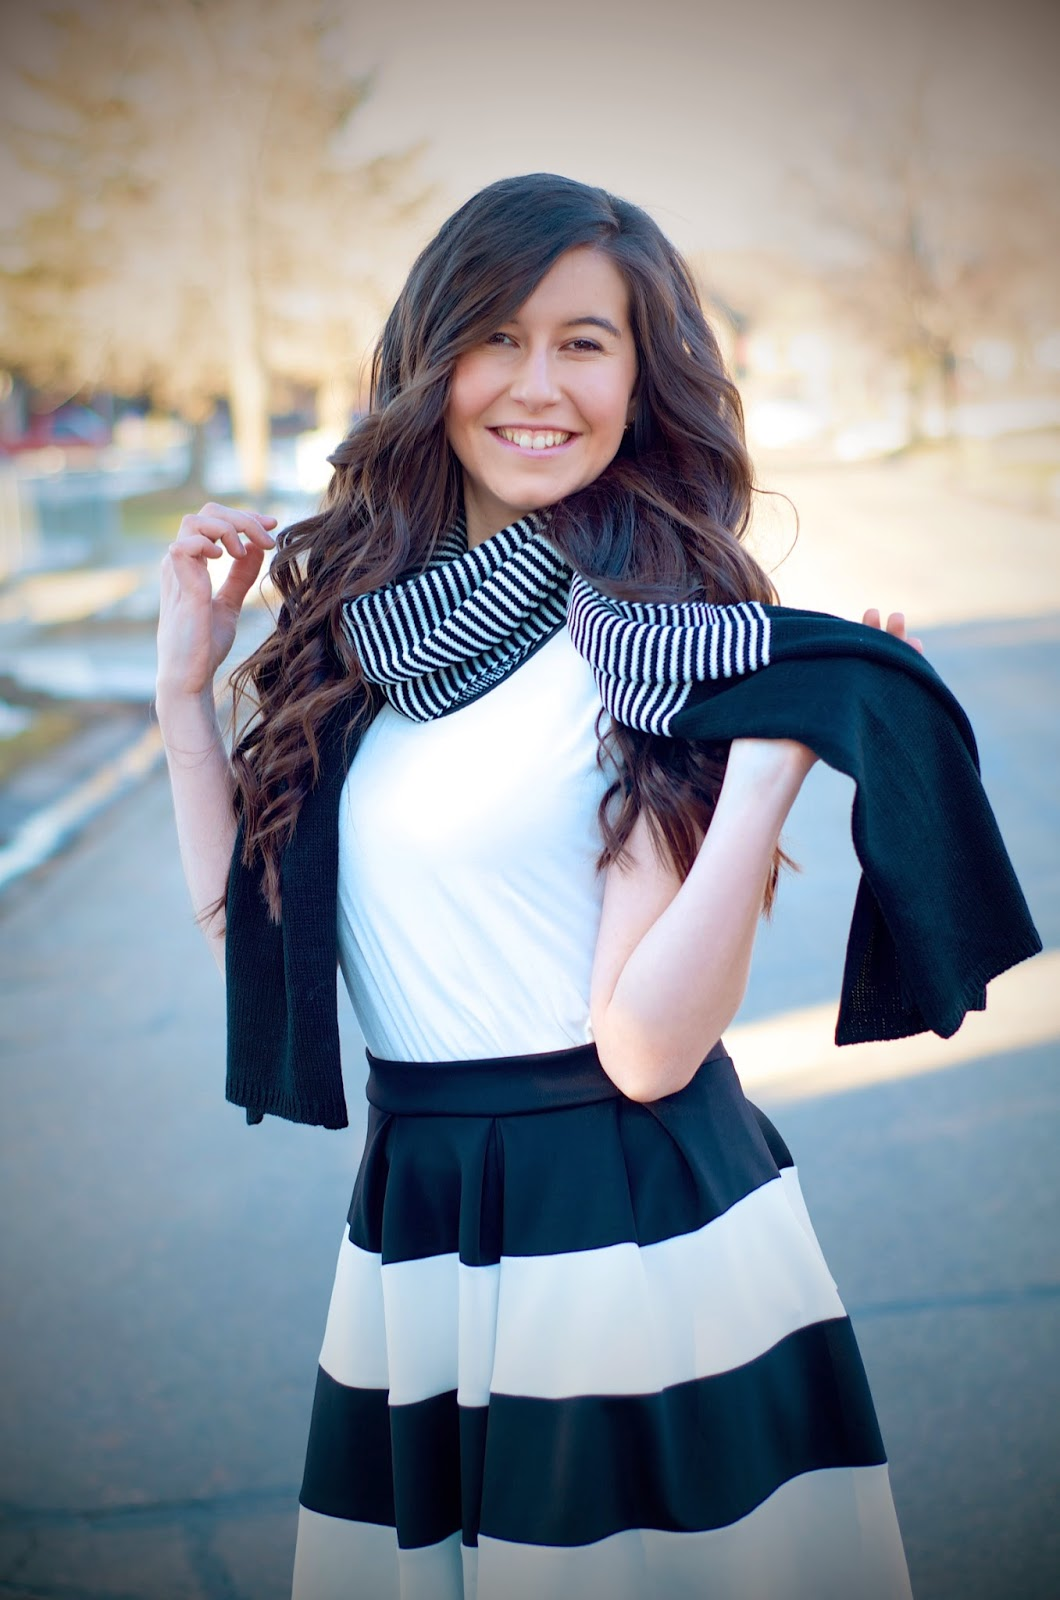 black and white outfit, edward eliason photography, persunmall, persun mall, scarf, black and white scarf, stripes, windsor store, windsor style, striped skirt, fit and flare, fit and flare skirt,